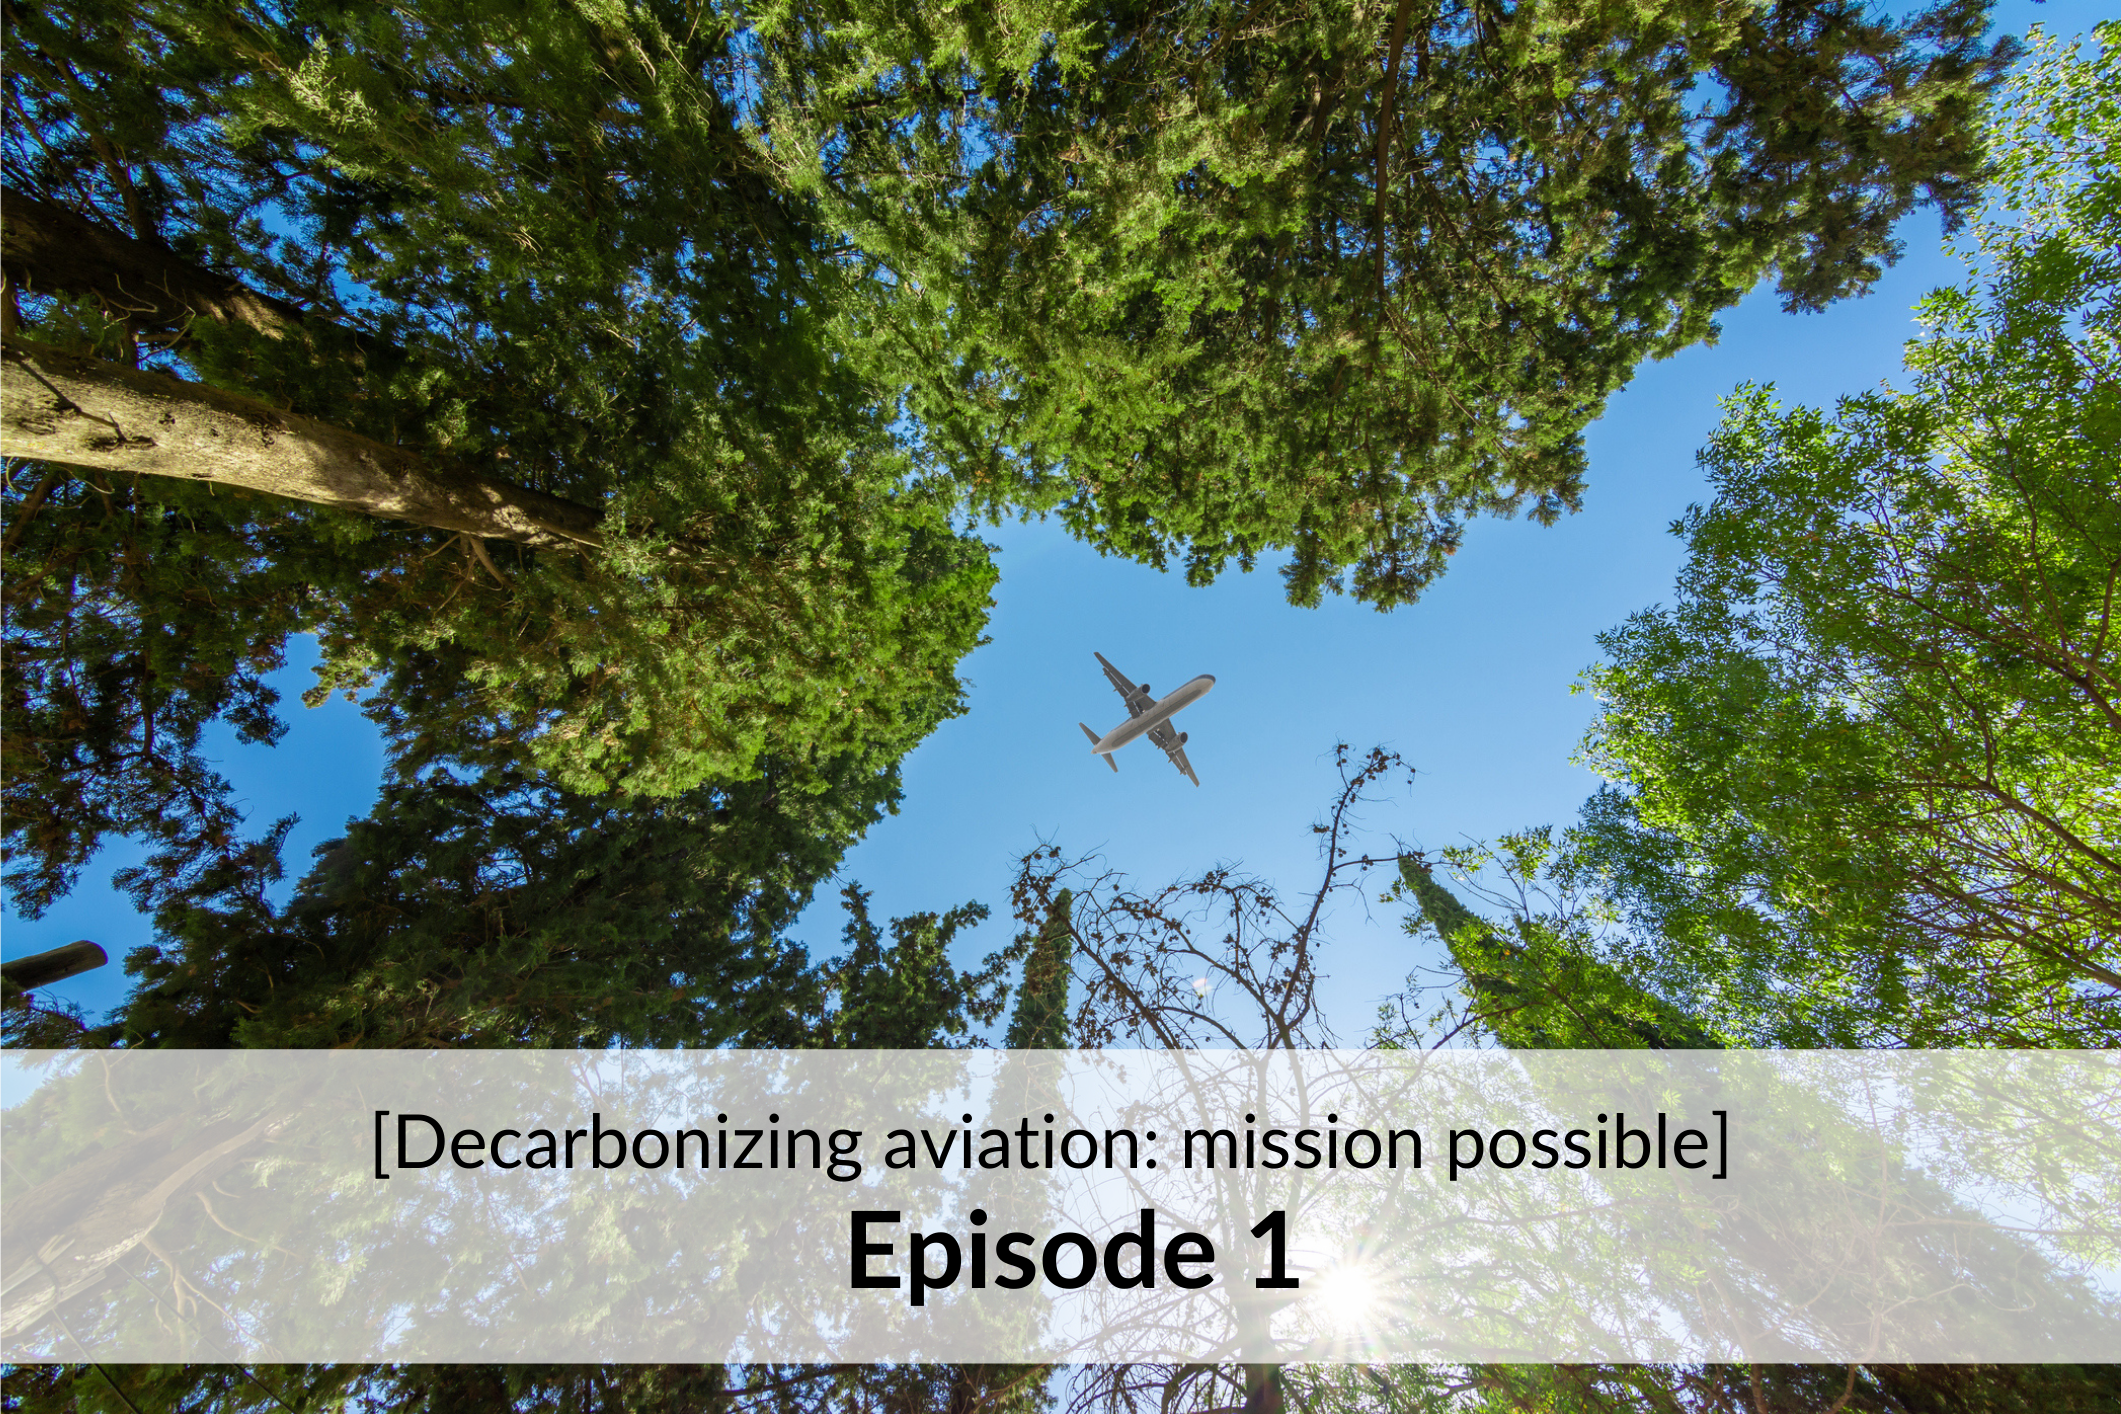 [Decarbonizing aviation: mission possible] - Episode 1: How much CO2 does aviation emit?